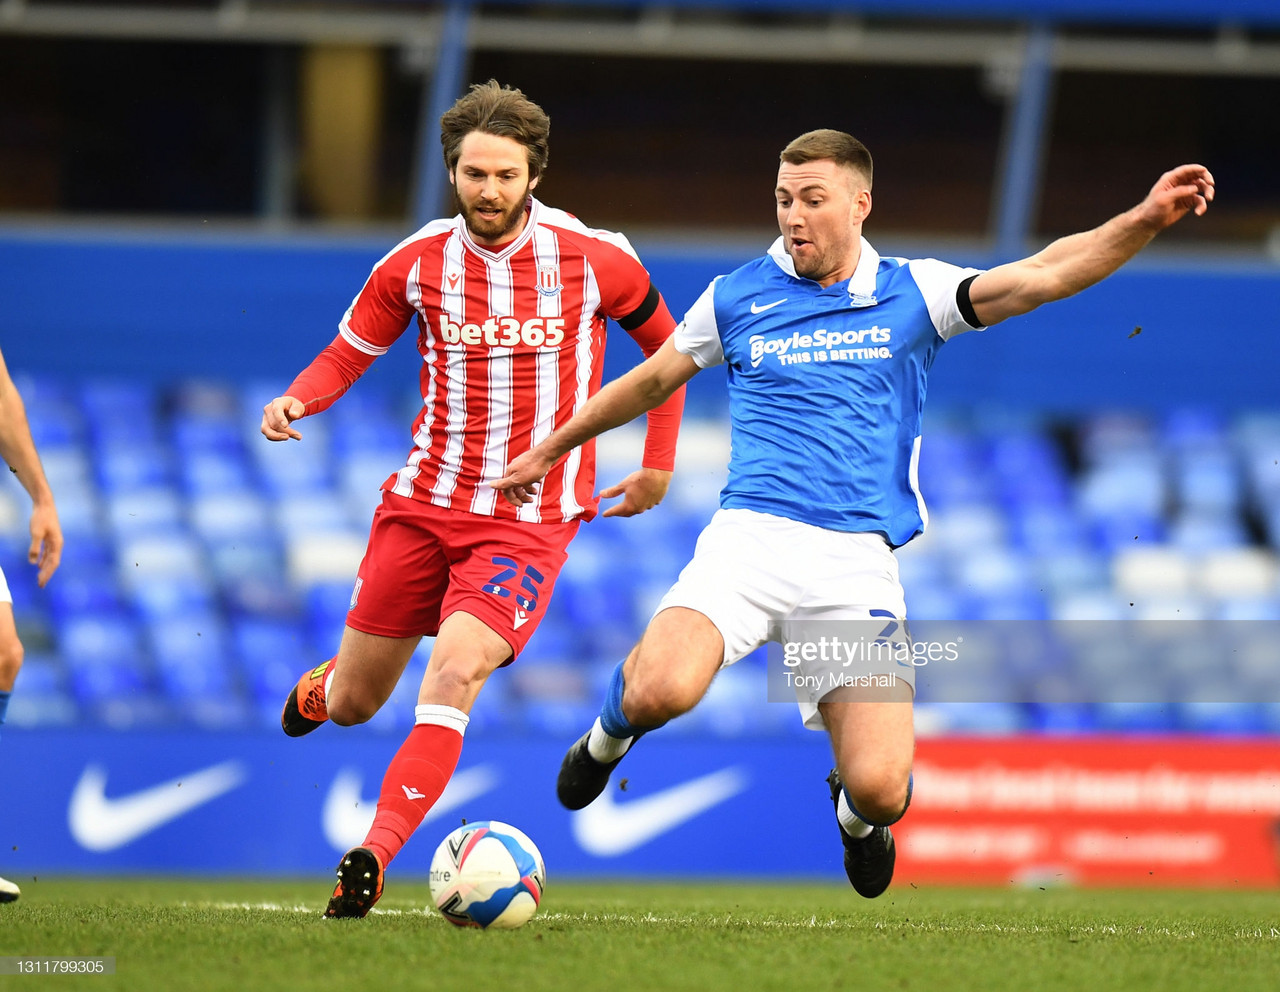 Birmingham City vs Stoke City preview: How to watch, kick-off time, team news, predicted lineups and ones to watch